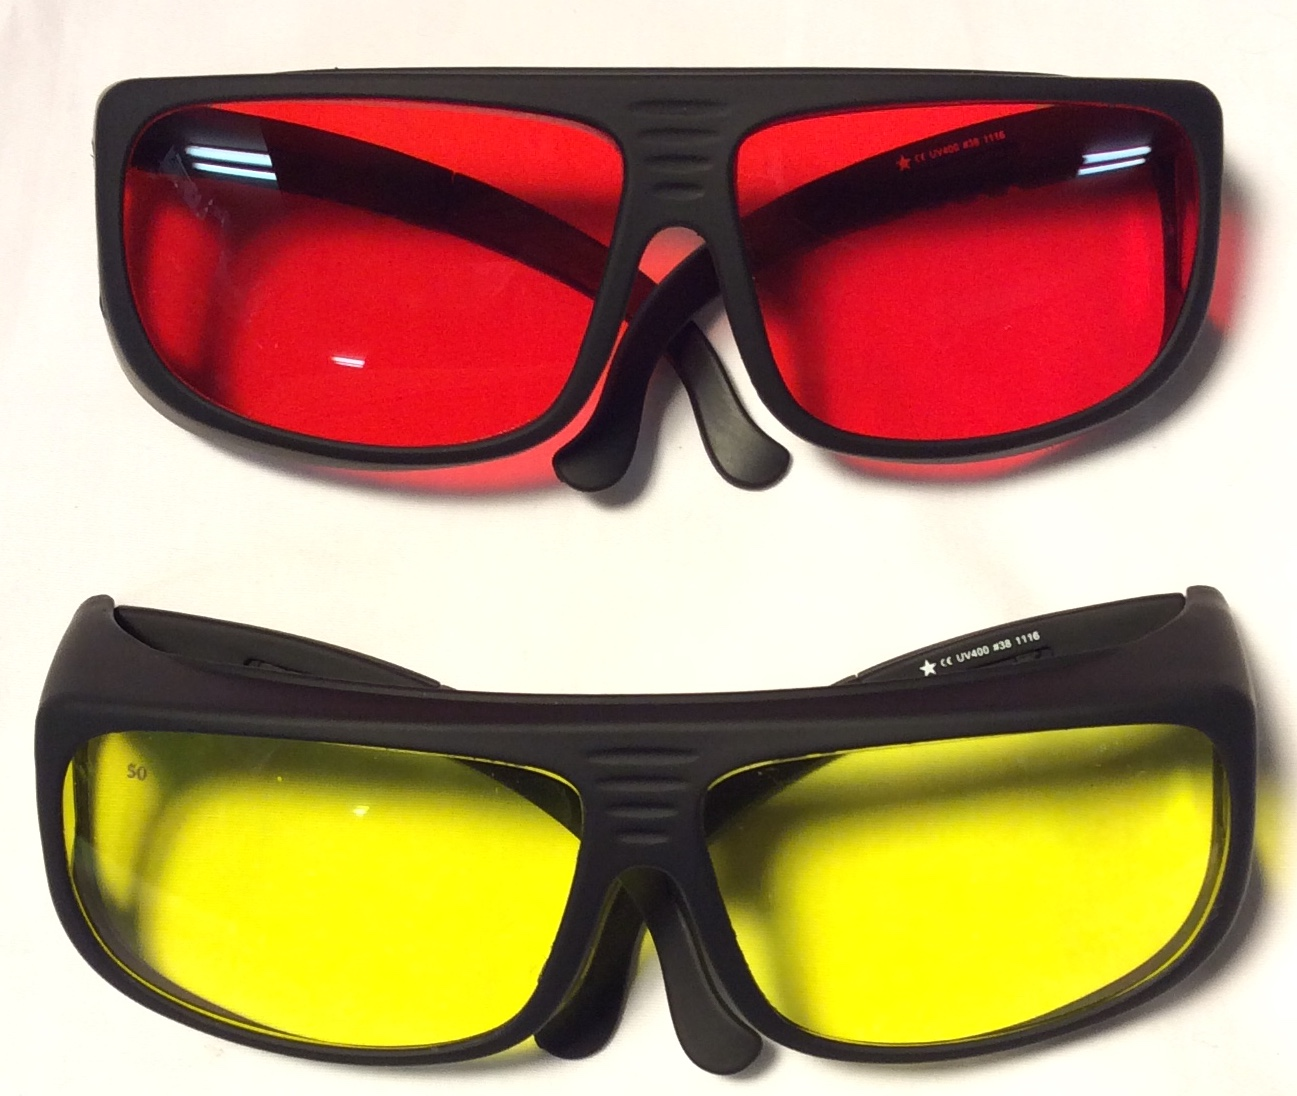 Noir UV goggles with black rubber